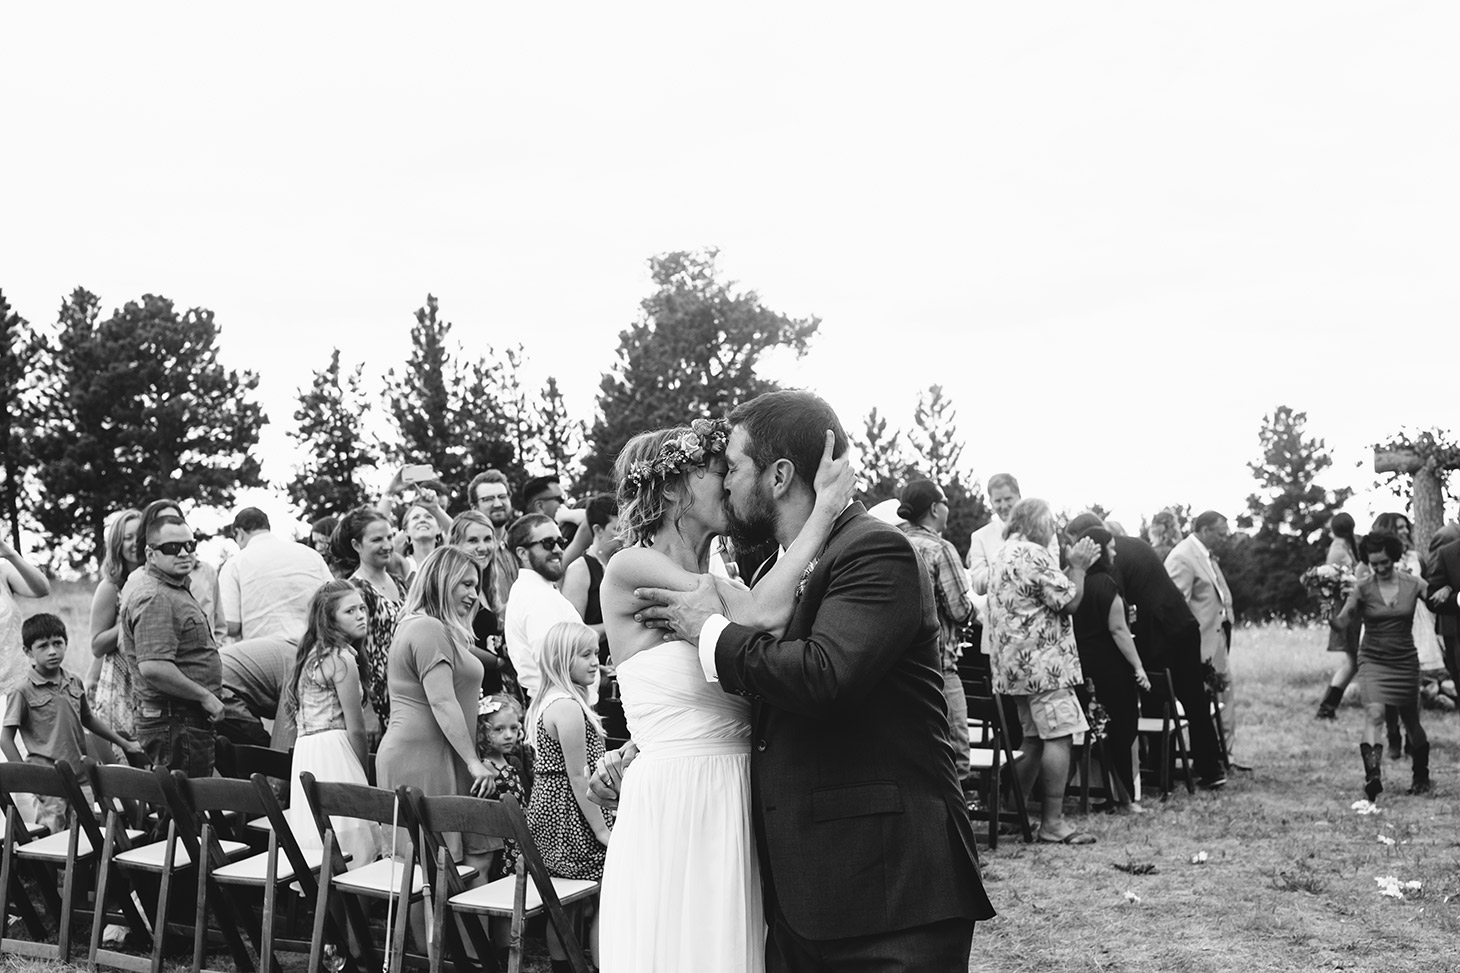 Megan-Newton-Photography-Best-Wedding-Photos-2015-189